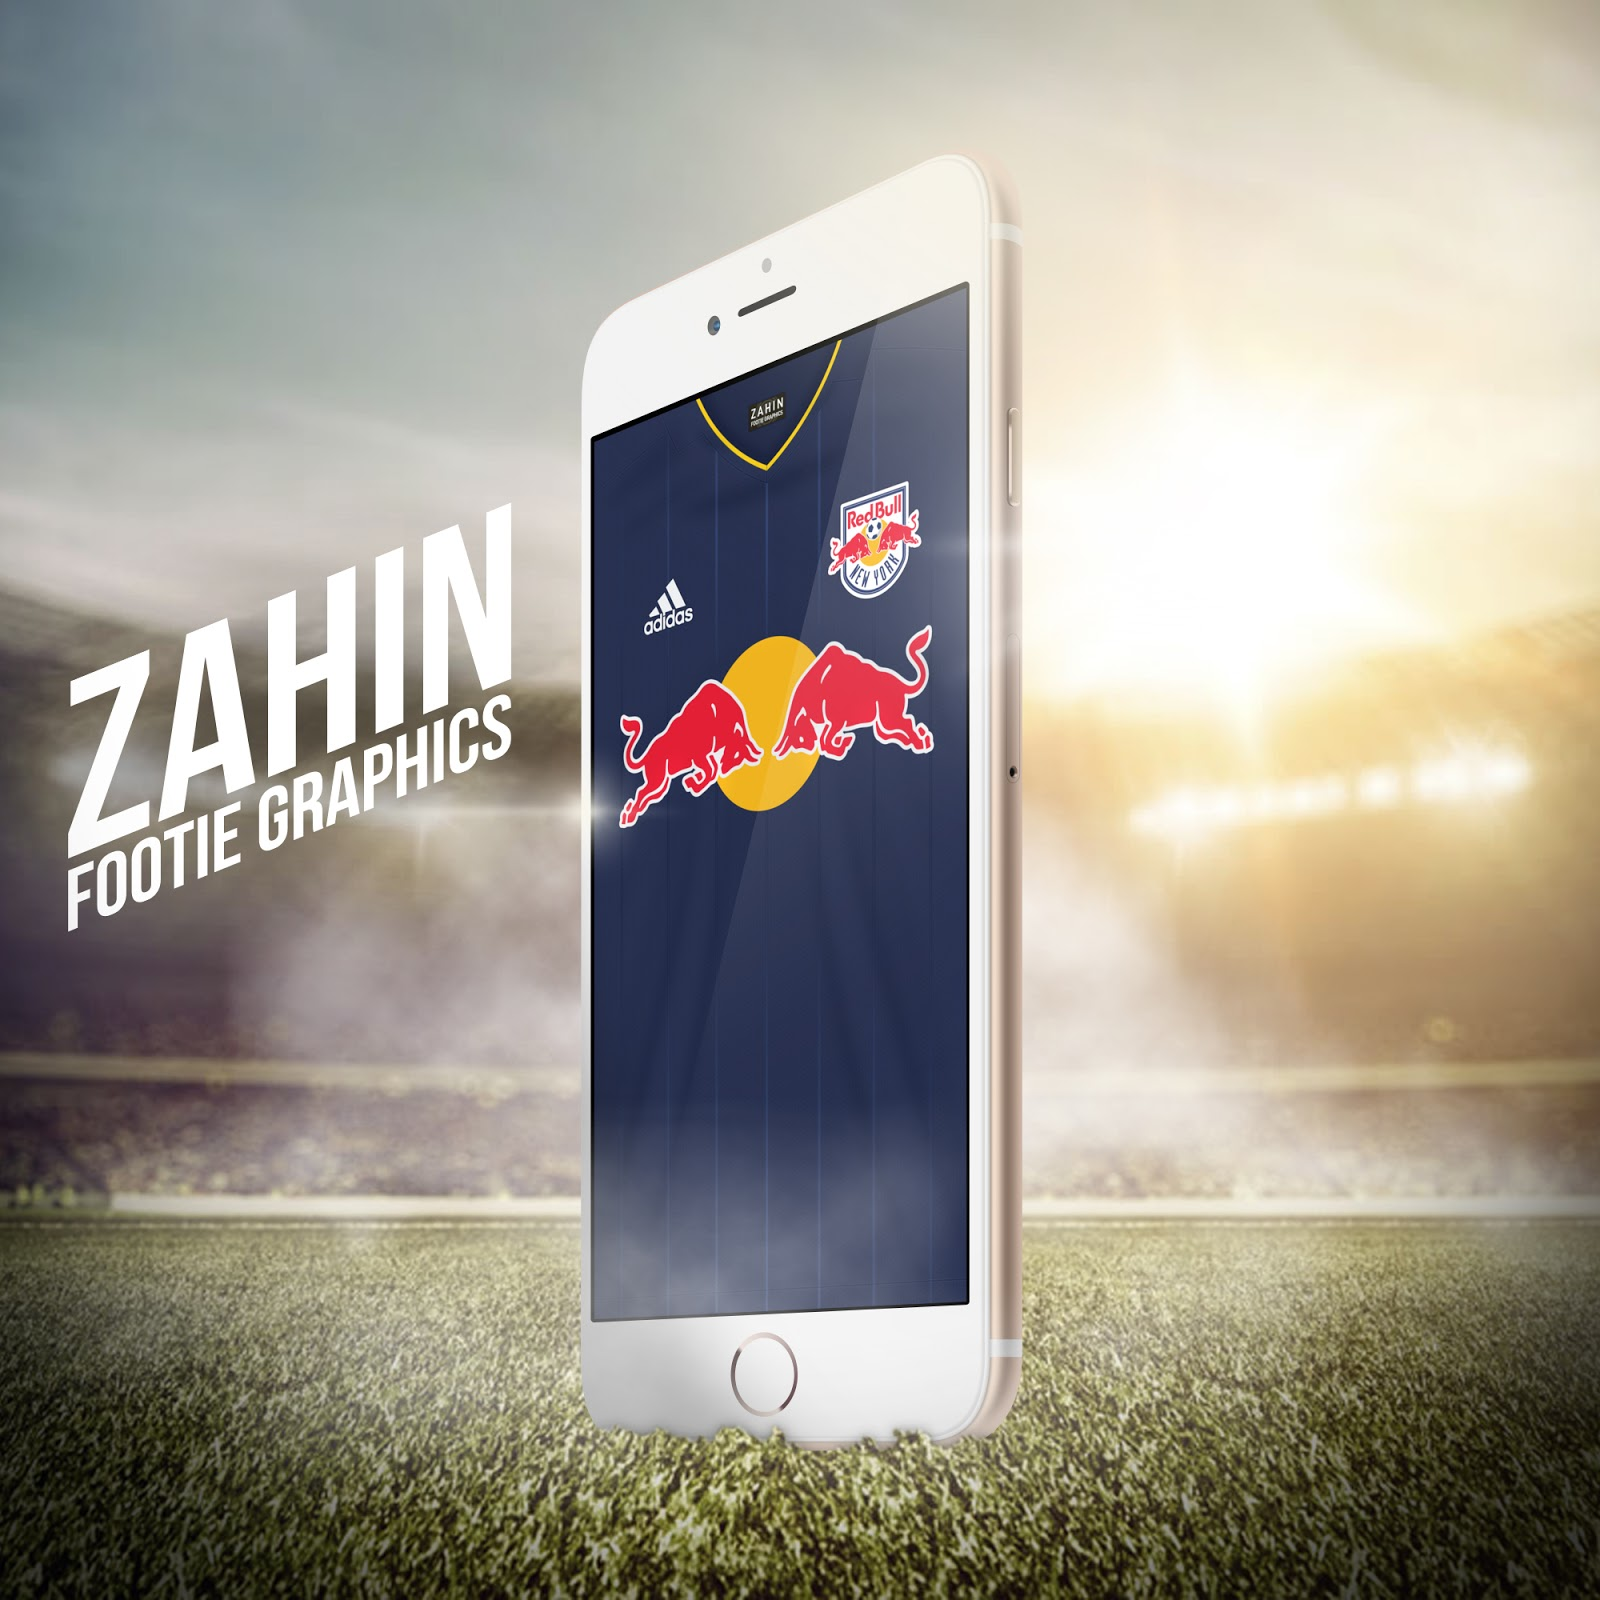 New York Red Bulls 2016 Zahin Footie Graphics